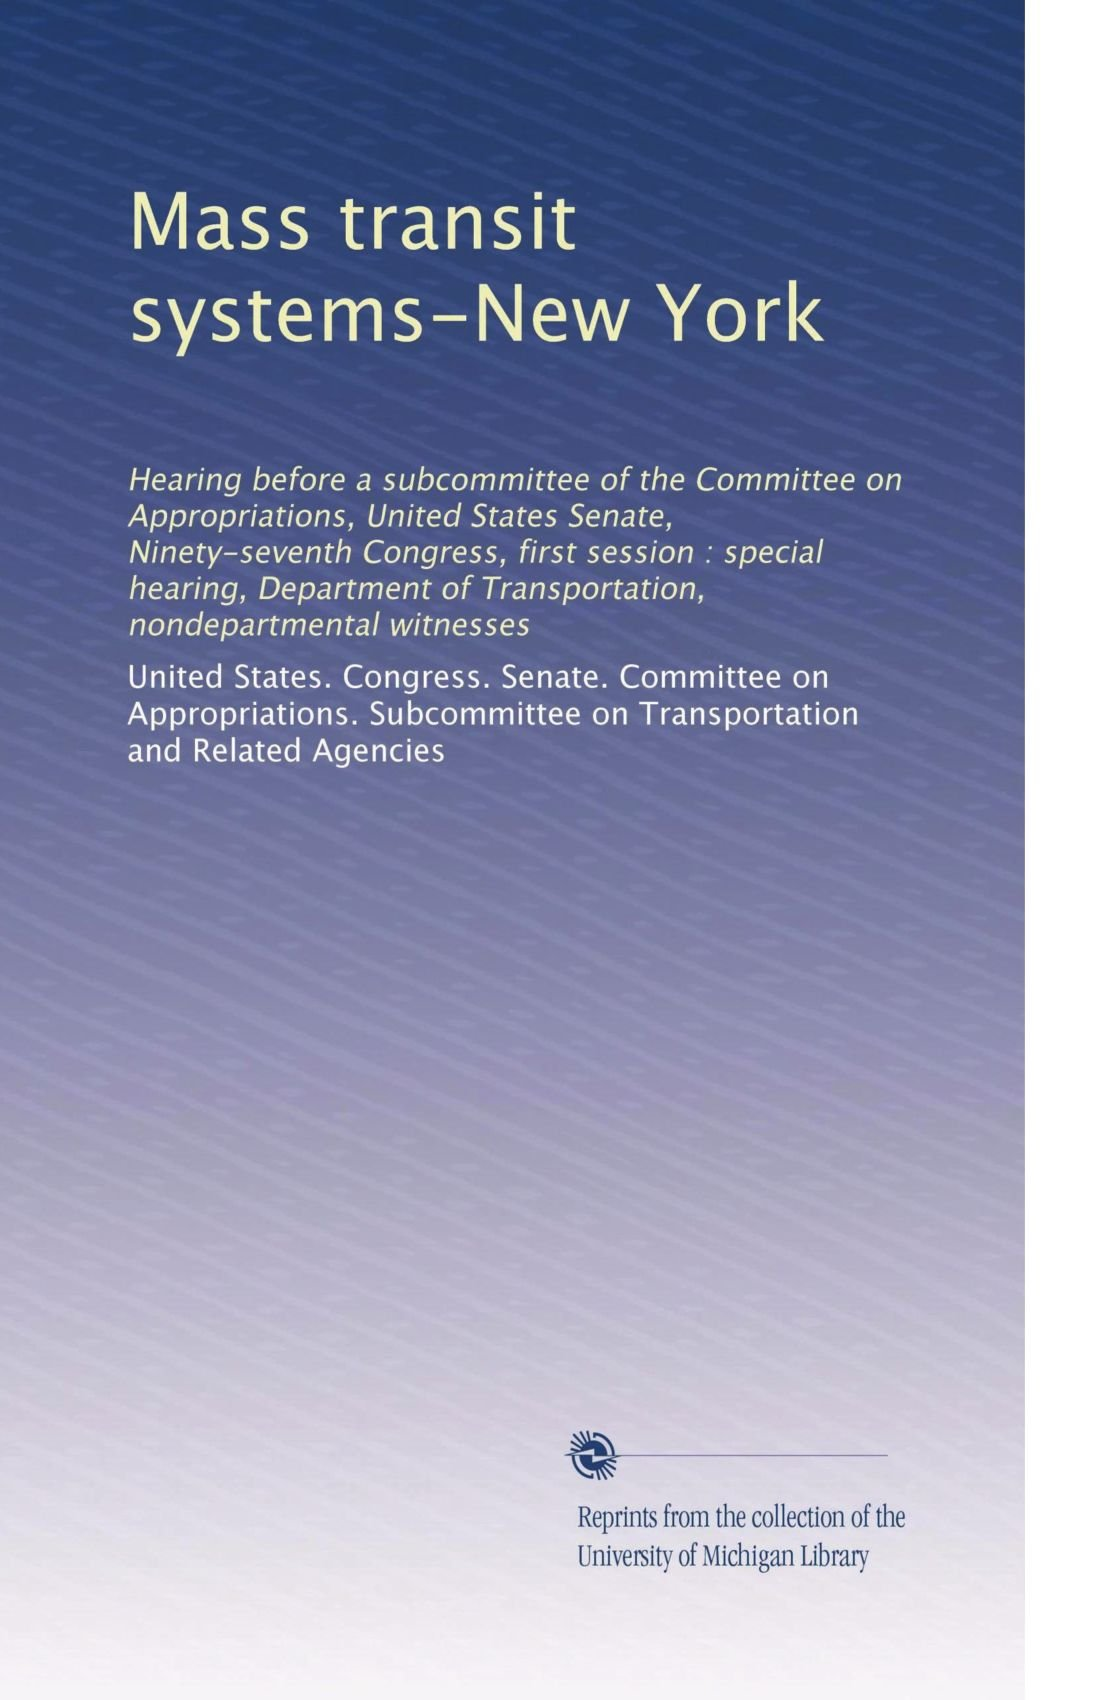 Mass transit systems-New York: Hearing before a subcommittee of the Committee on Appropriations, United States Senate, Ninety-seventh Congress, first ... of Transportation, nondepartmental witnesses